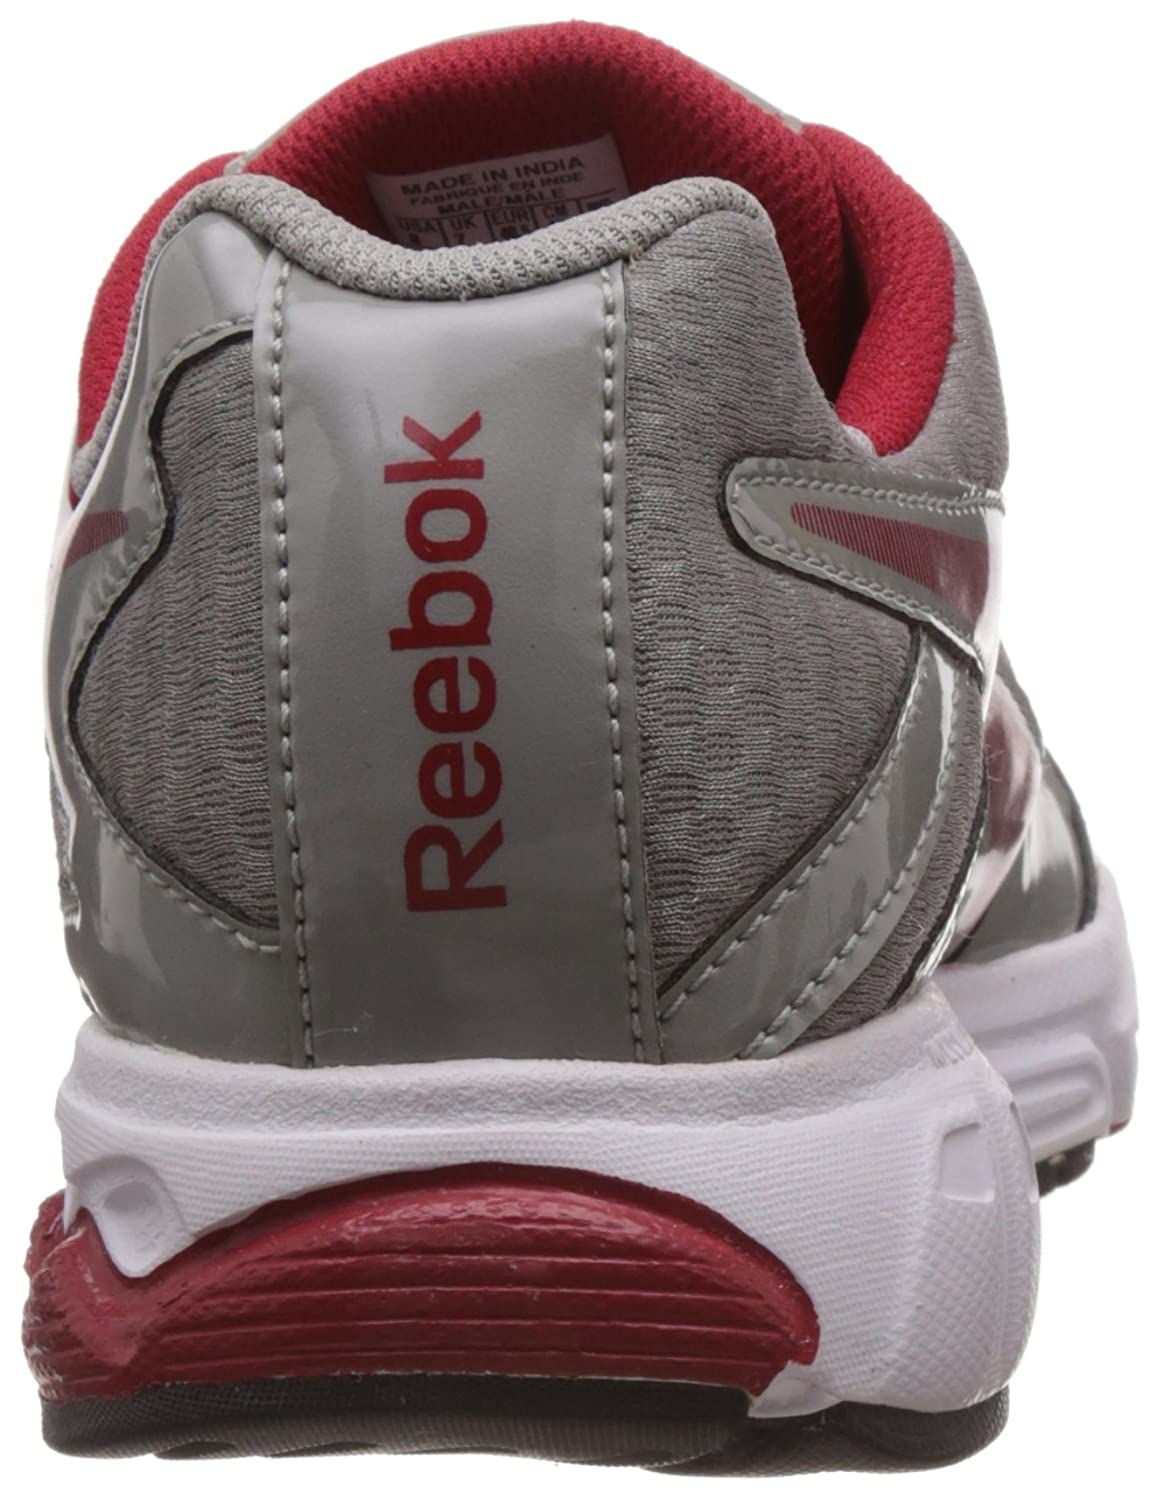 3a082129a8c Reebok Men s Dynamic Ride Lp Carbon and Red Mesh Running Shoes - 7 UK  Buy  Online at Low Prices in India - Amazon.in